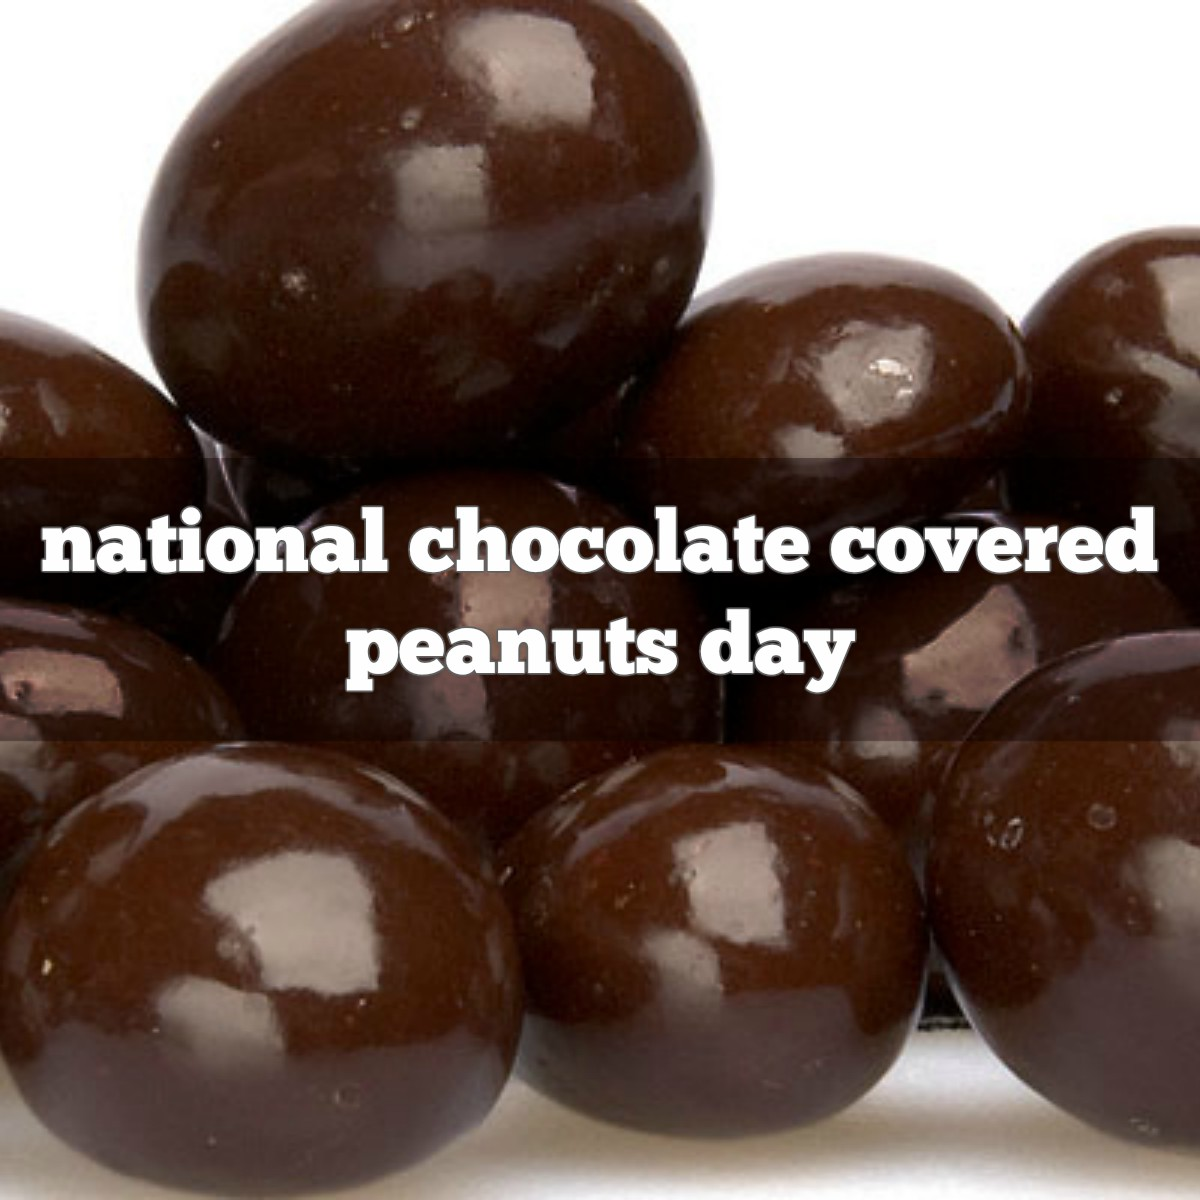 February 25th is National Chocolate Covered Peanut Day ...